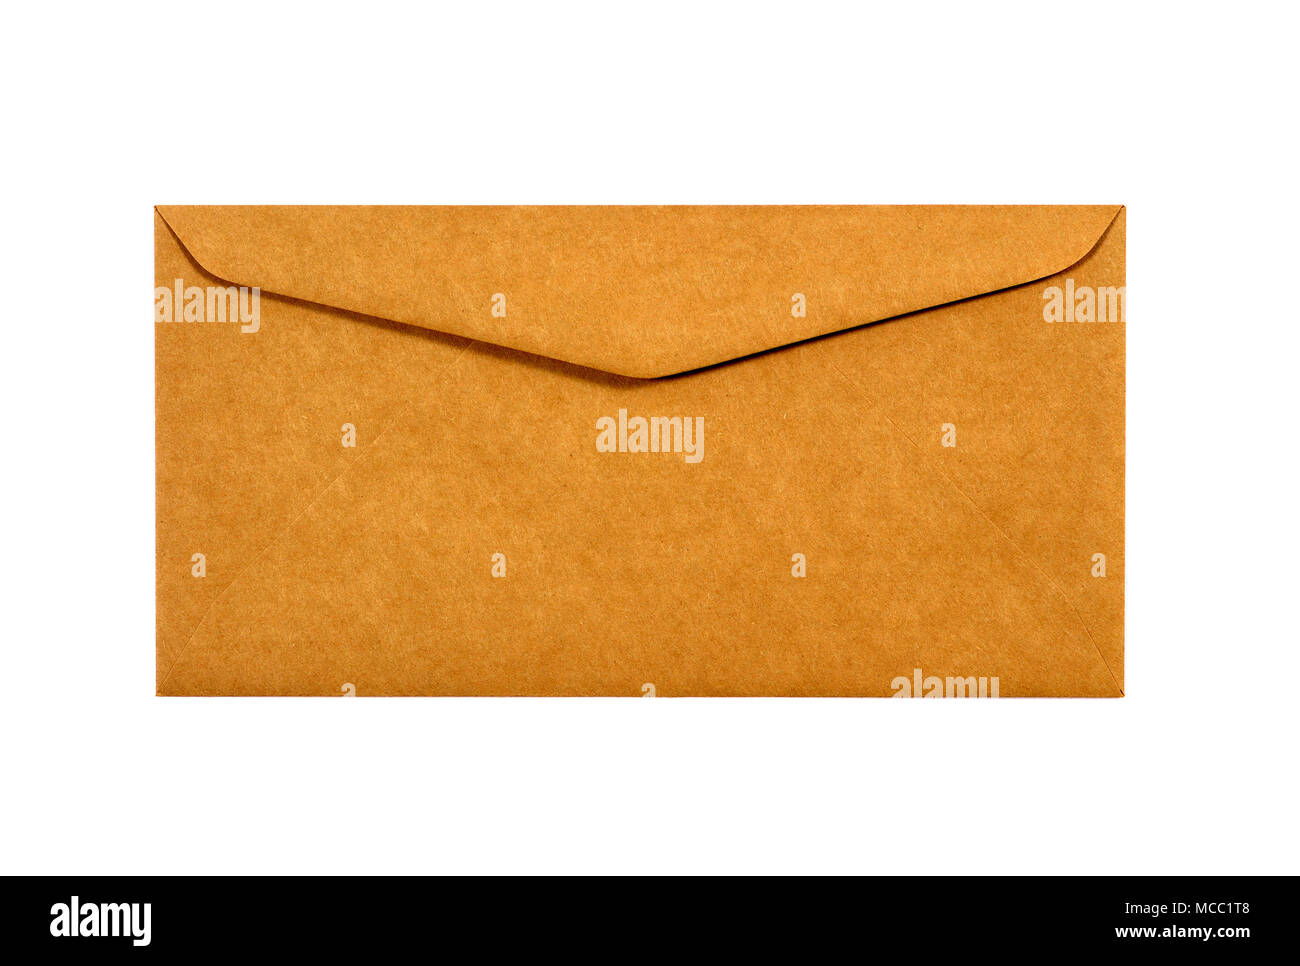 Plain brown letter size envelope against a white background Stock